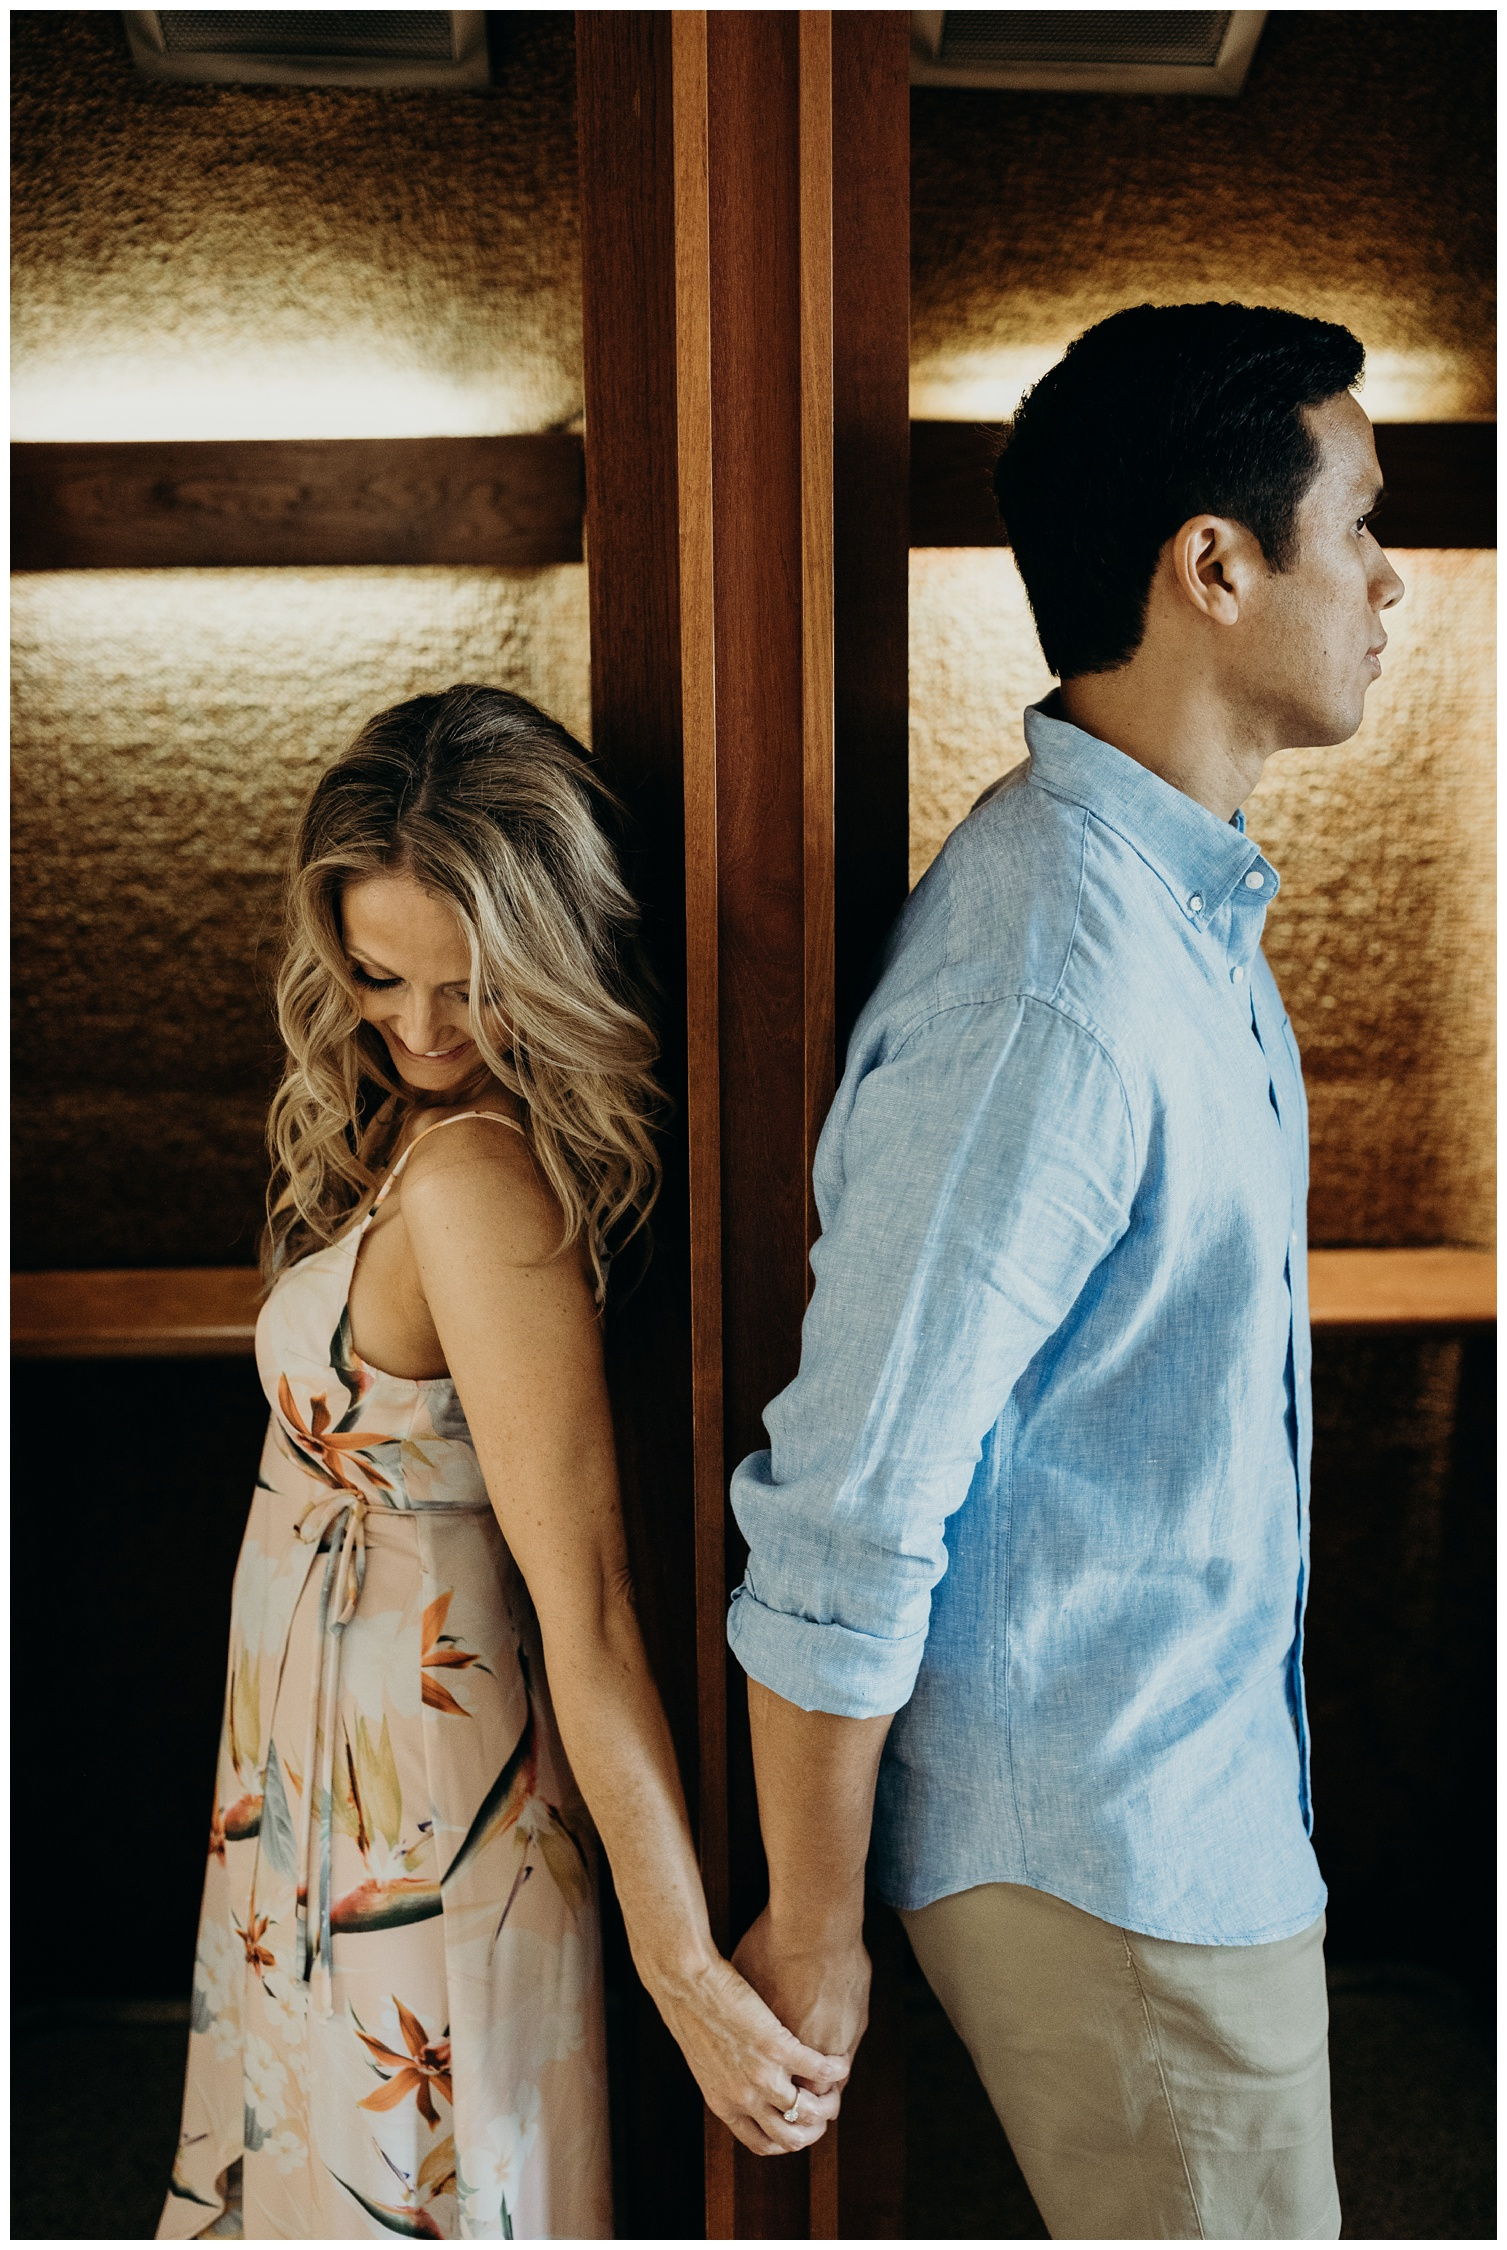 Hawaii-Engagement-Photographer-Keani-Bakula-Turtle-Bay_0013.jpg